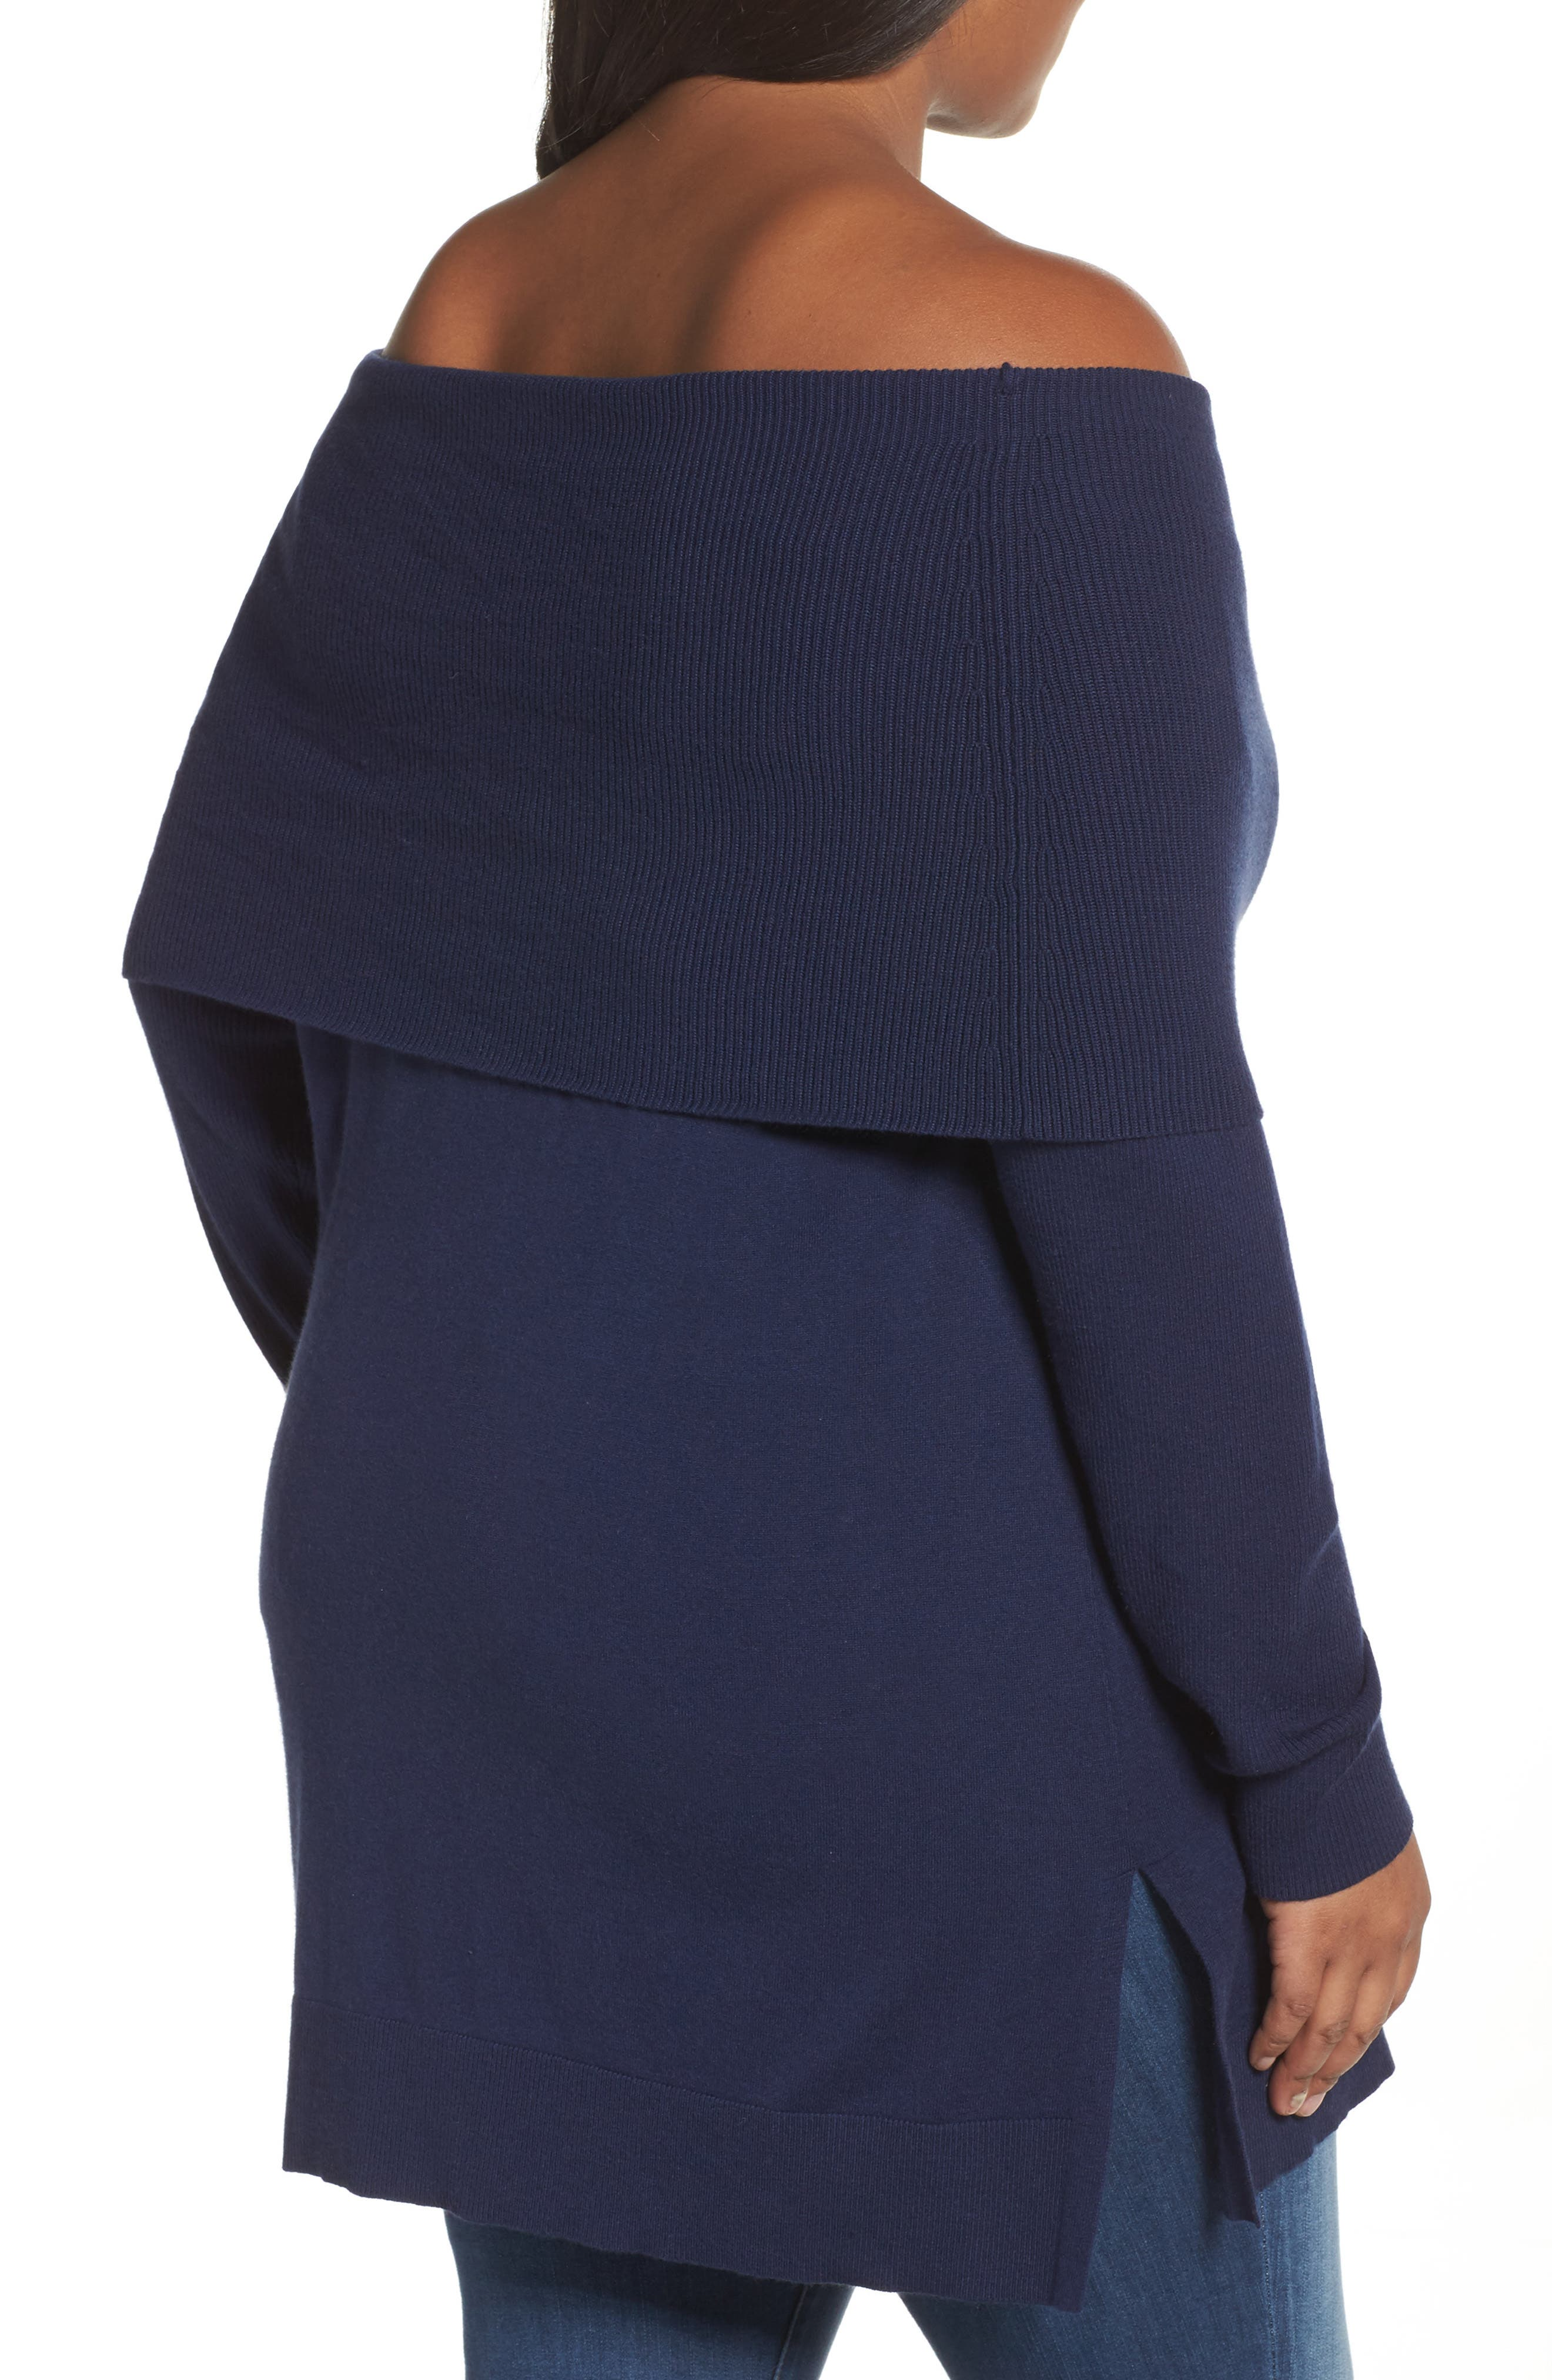 Cowl Neck Tunic Sweater,                             Alternate thumbnail 2, color,                             Navy Peacoat